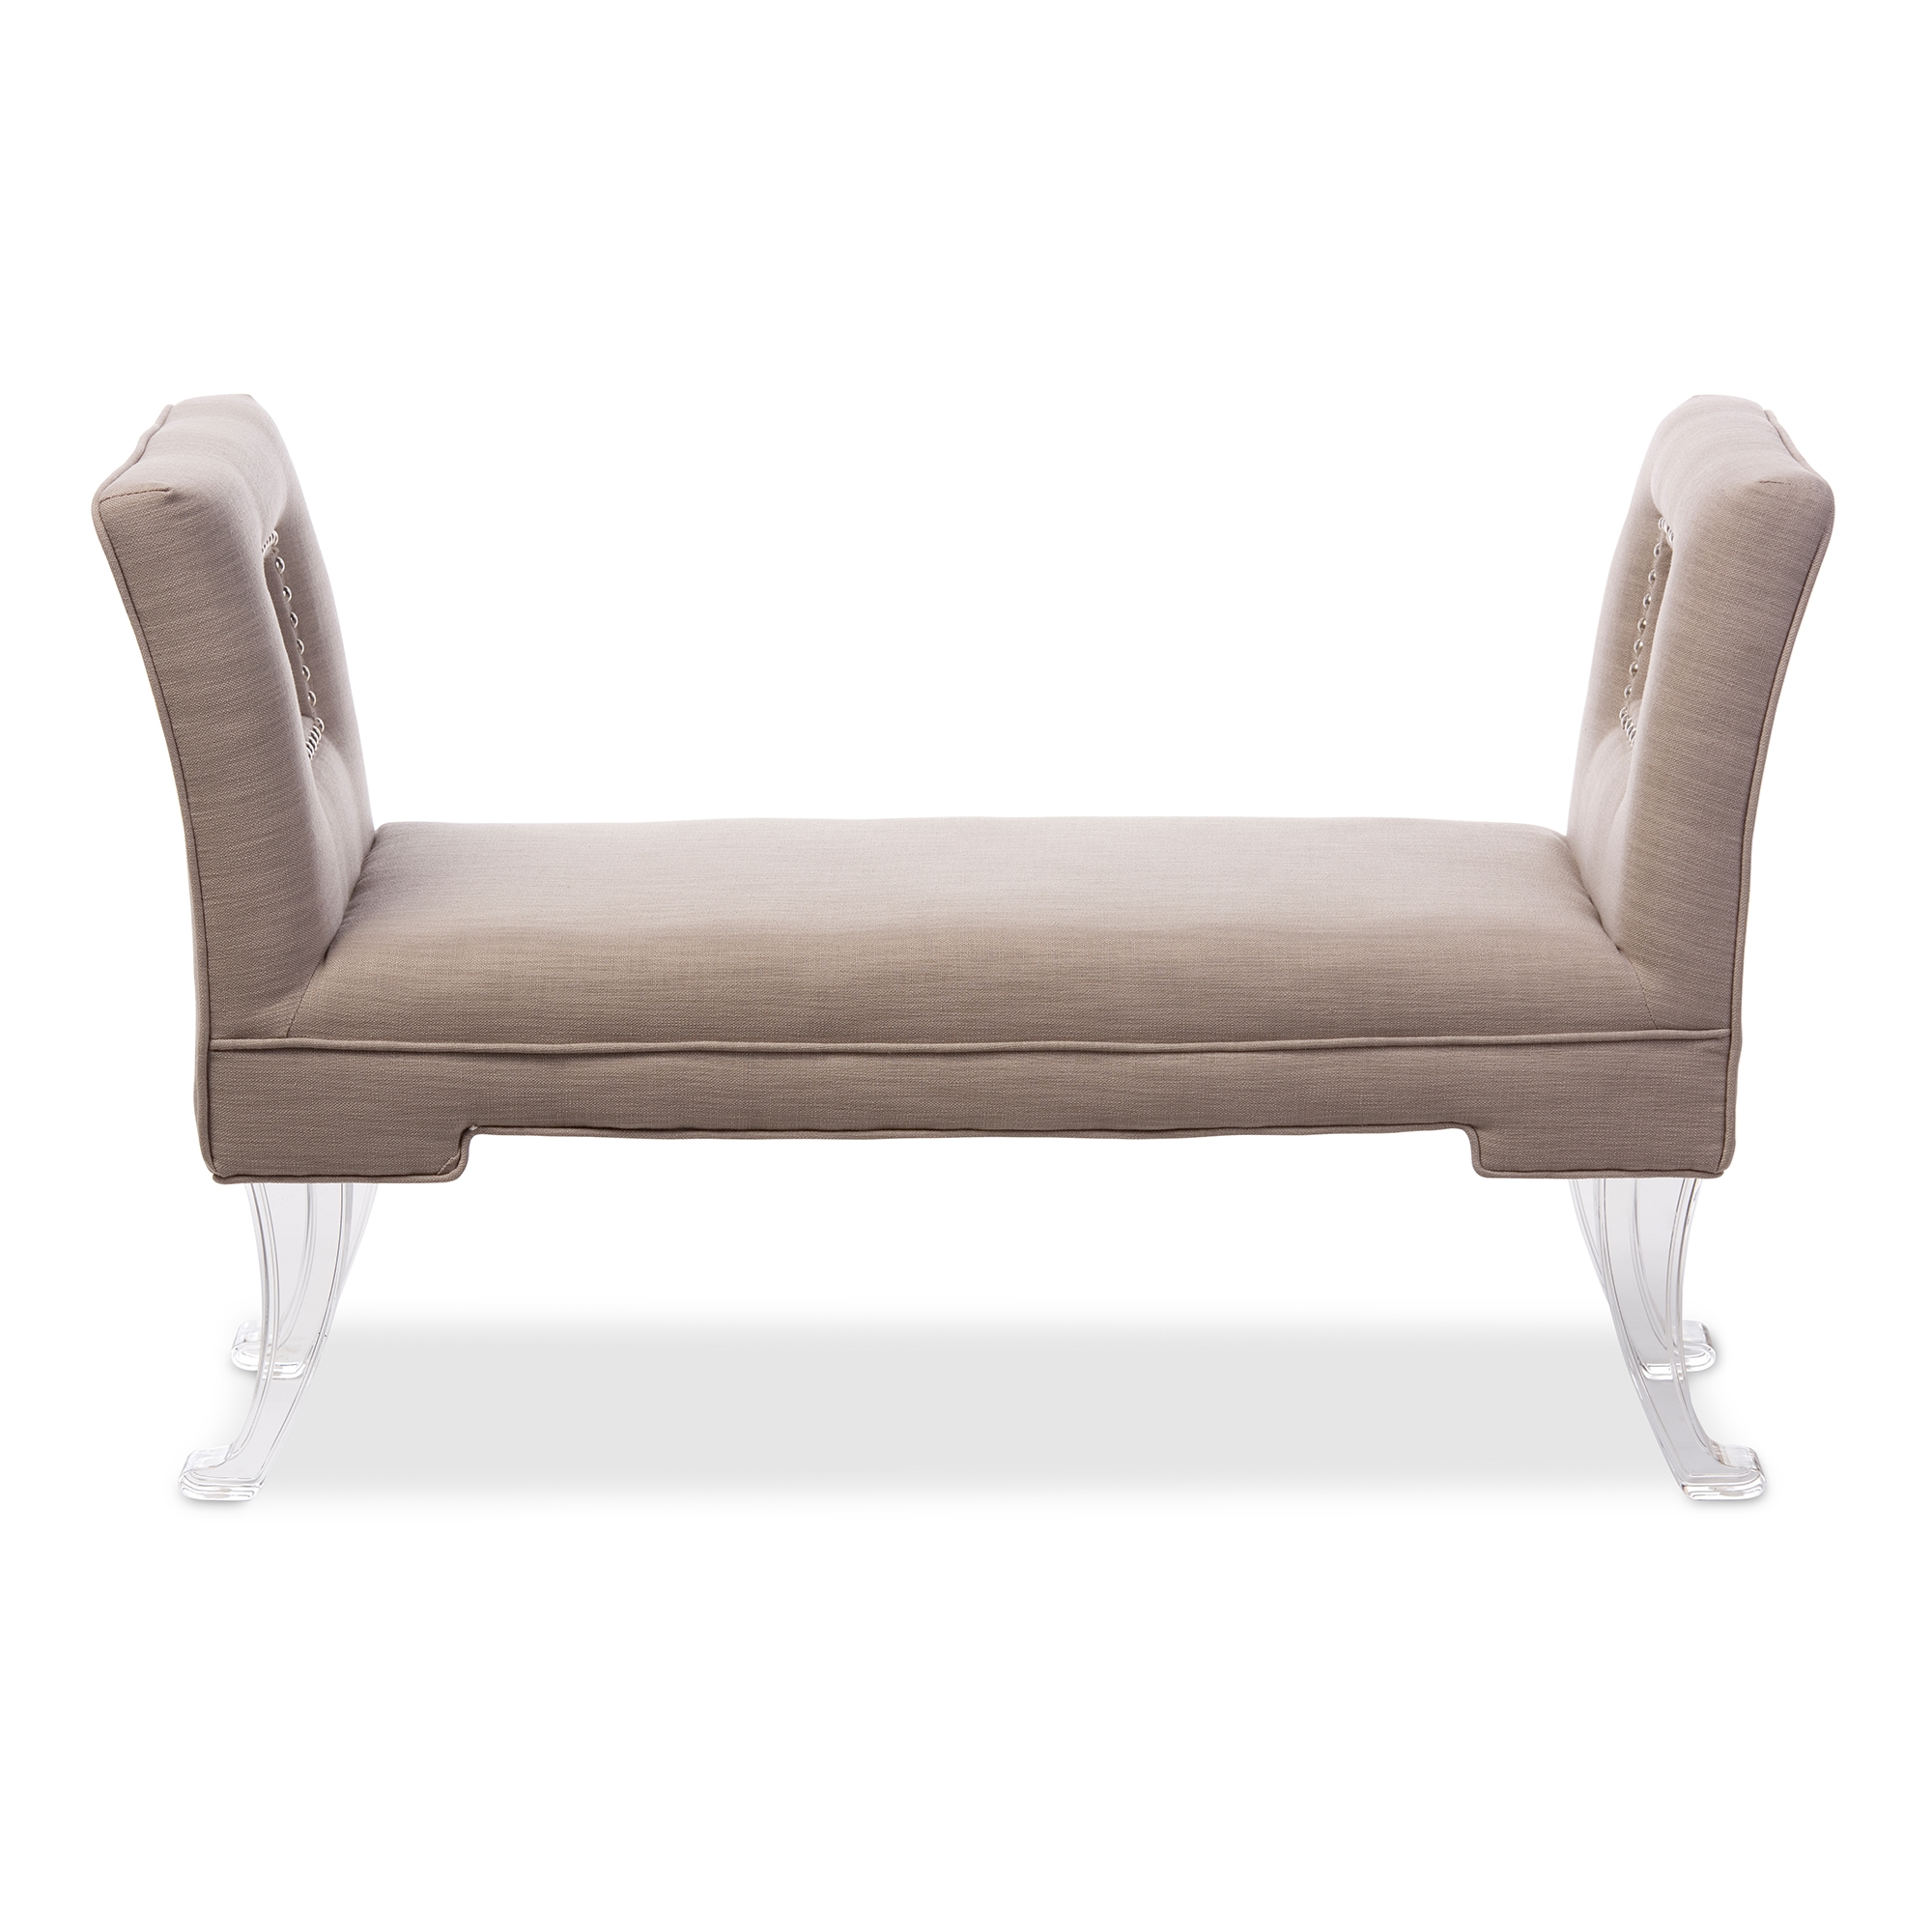 Baxton Studio Bessie Modern And Contemporary Beige Linen Upholstered Lux  Flared Arms Ottoman Bench With Flared Acrylic Legs